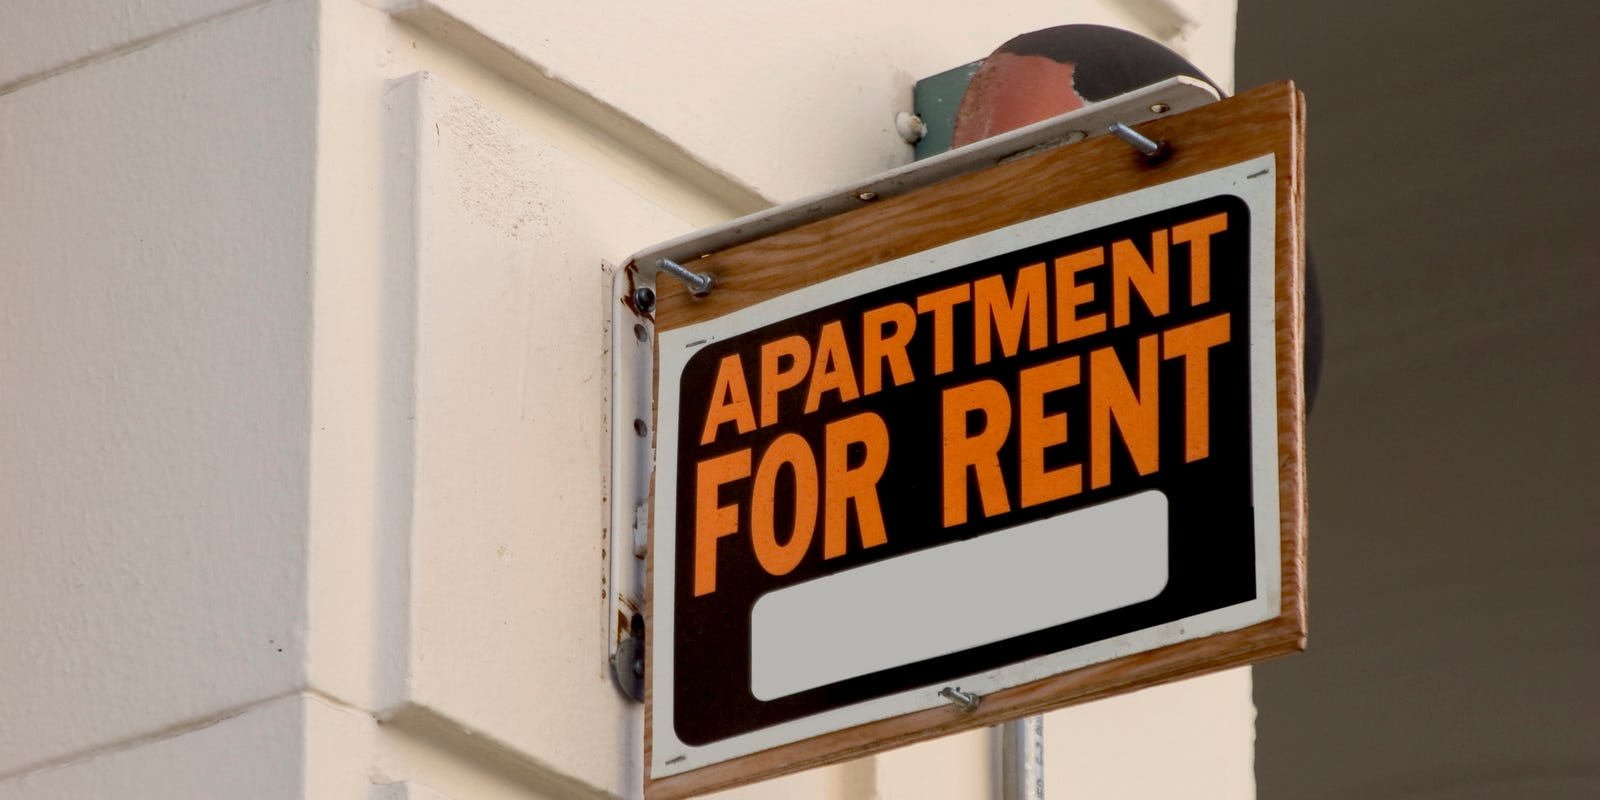 Renters across New York state are about to get new